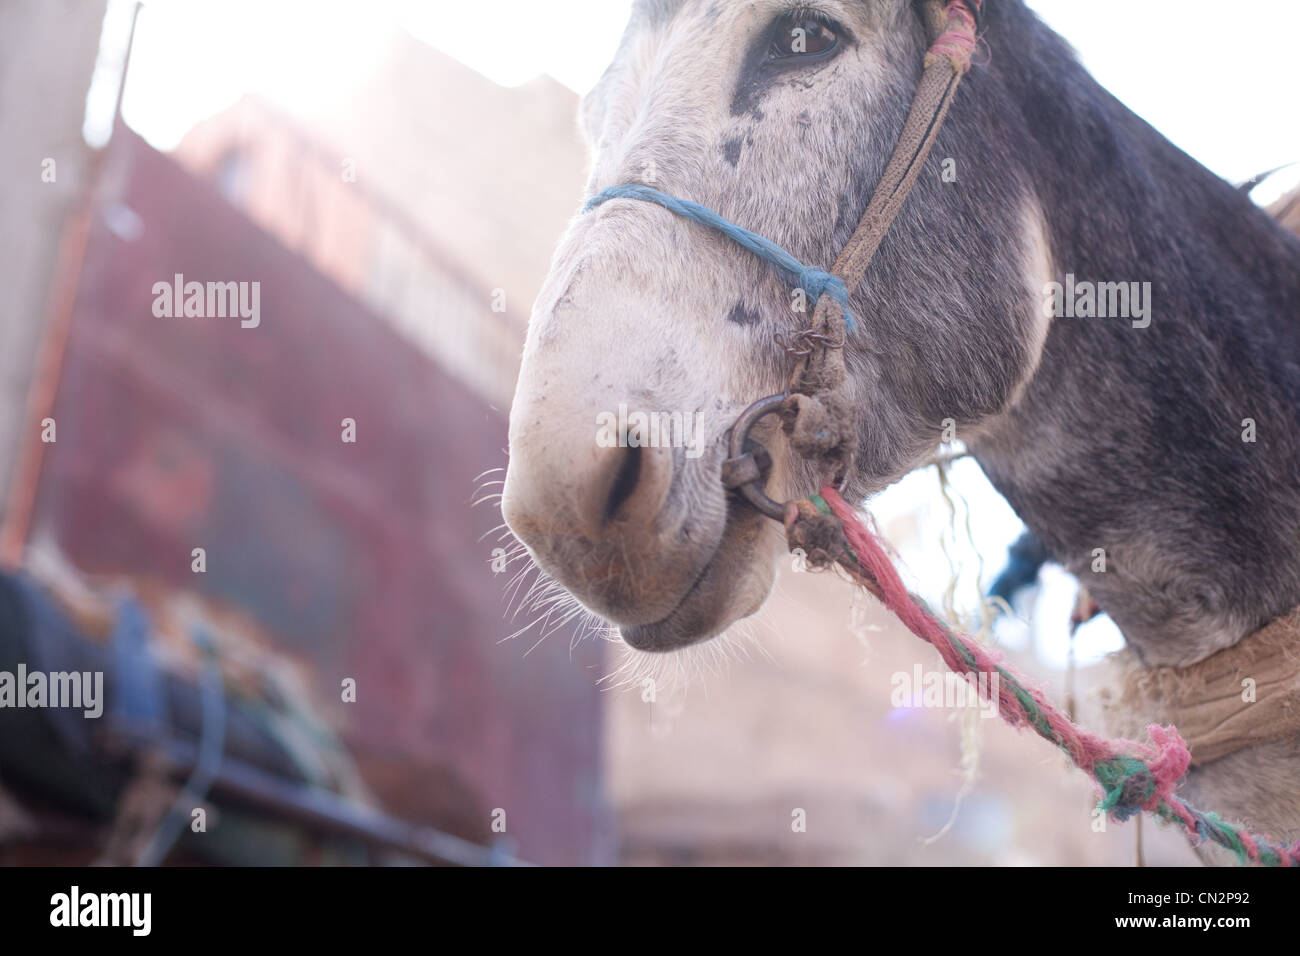 Donkey's head, low angle view Stock Photo